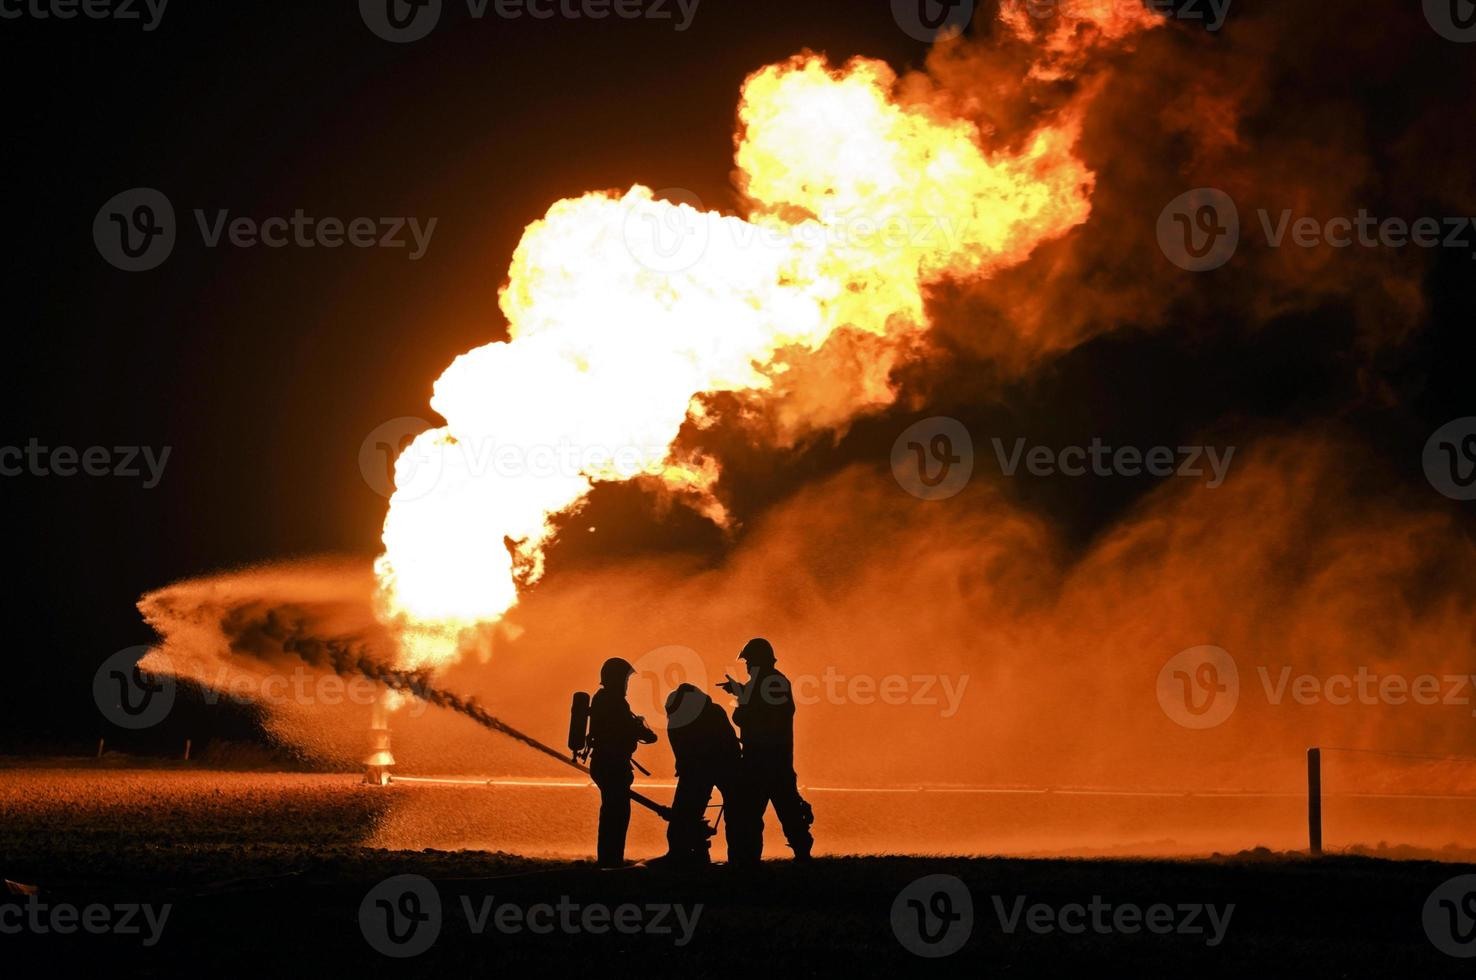 Firefighter gas explosion training photo